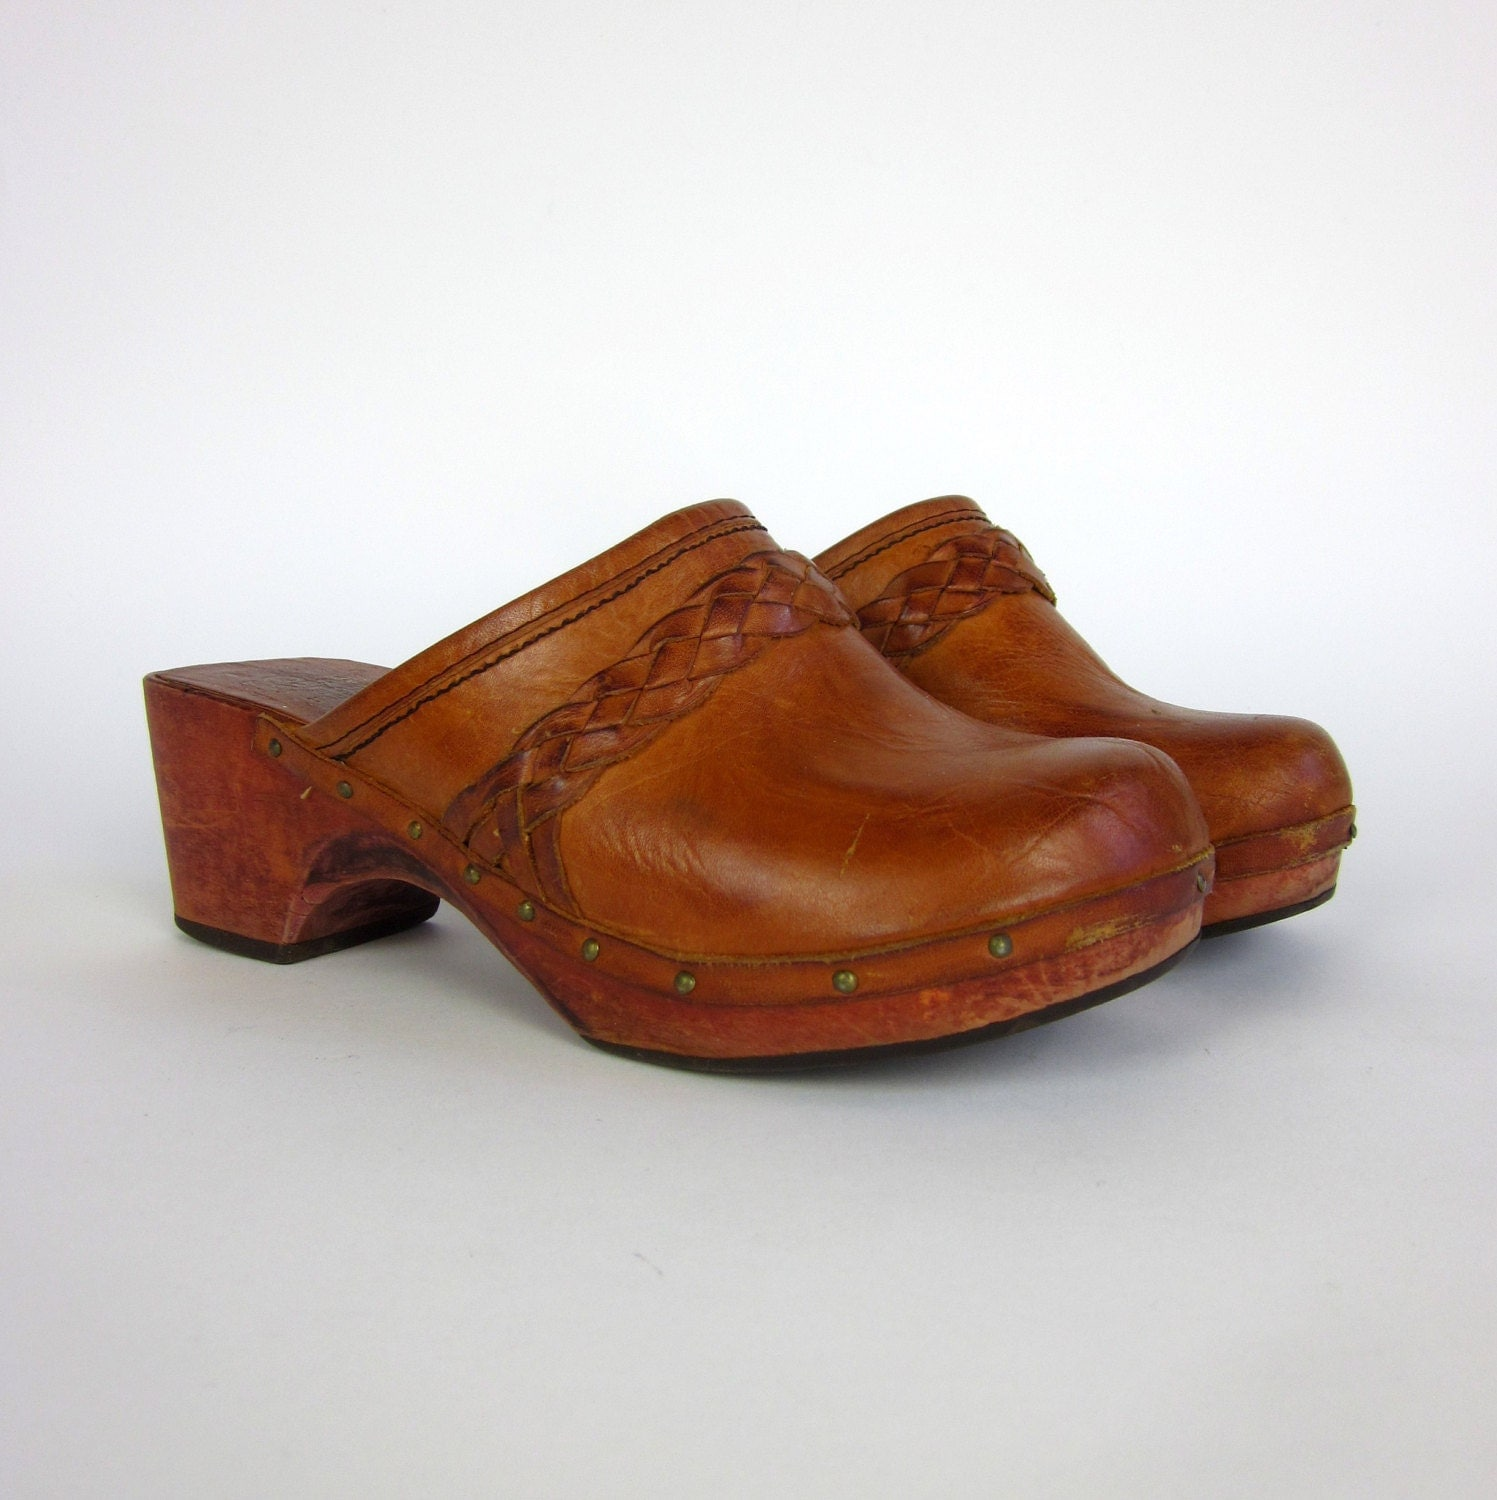 Womens Size 5 Leather Clogs 70s / Vintage Kinney By AttysVintage